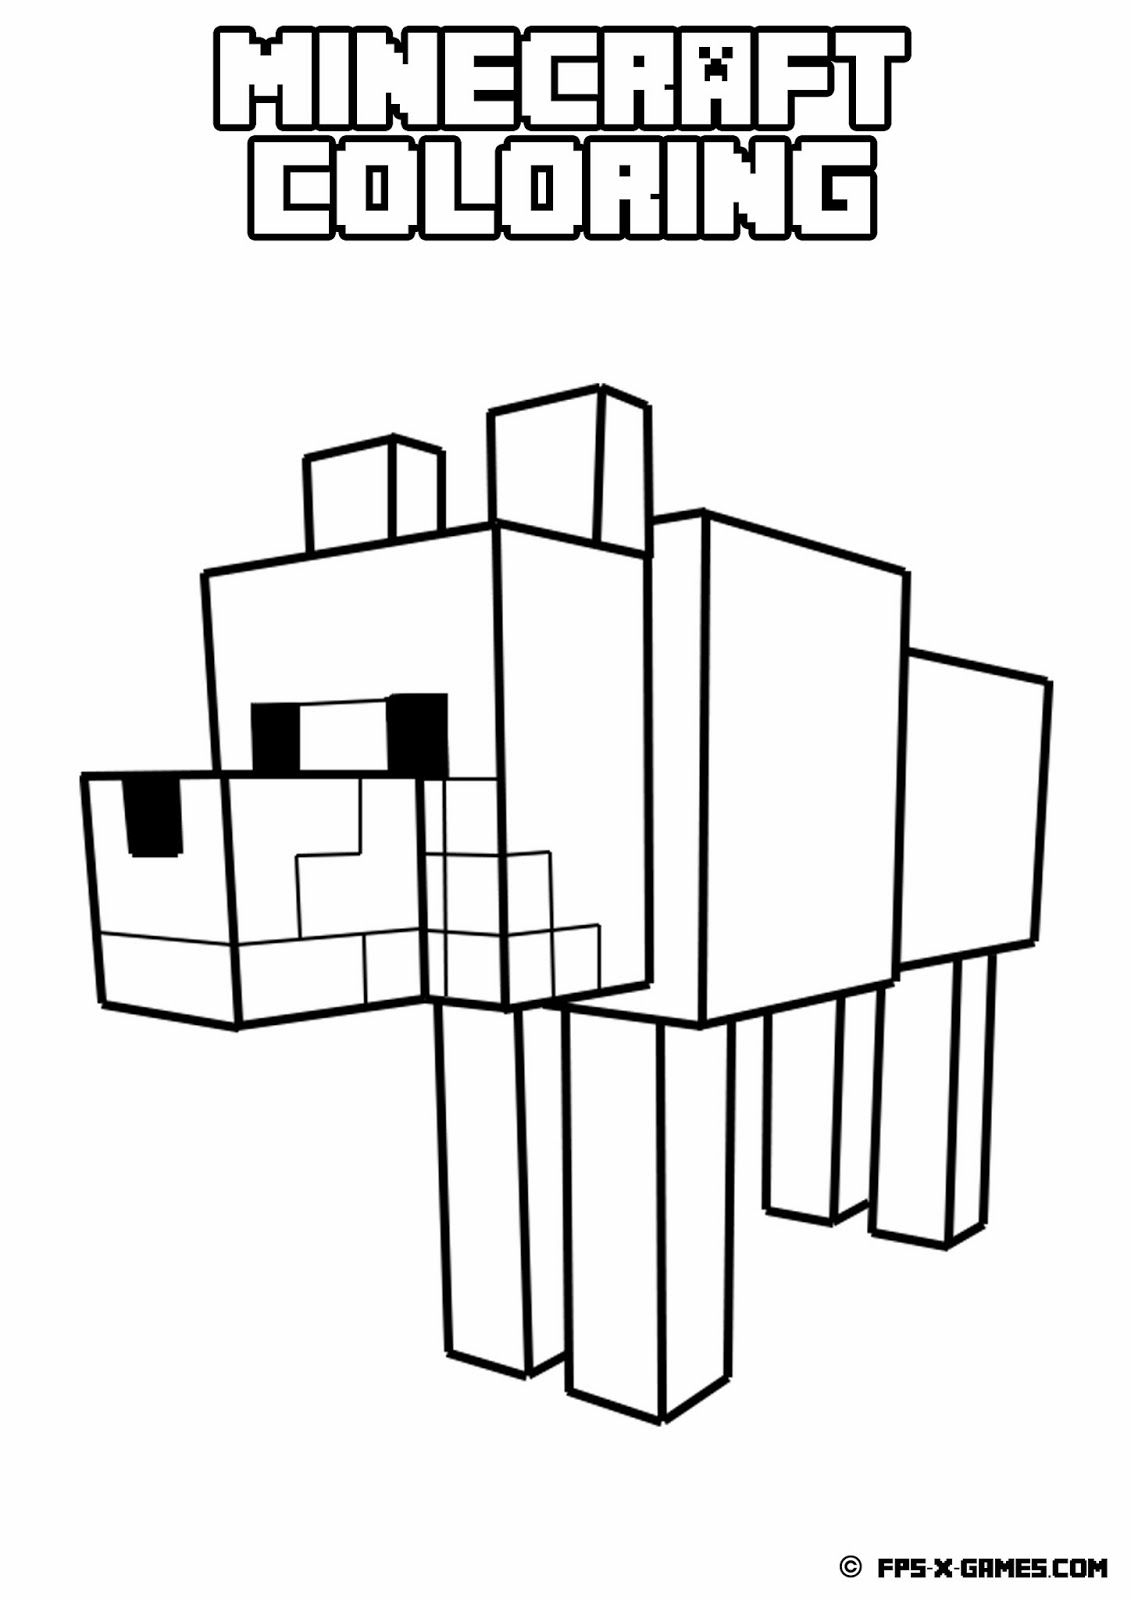 minecraft dog coloring pages minecraft diamond sword coloring page at getdrawings dog minecraft coloring pages